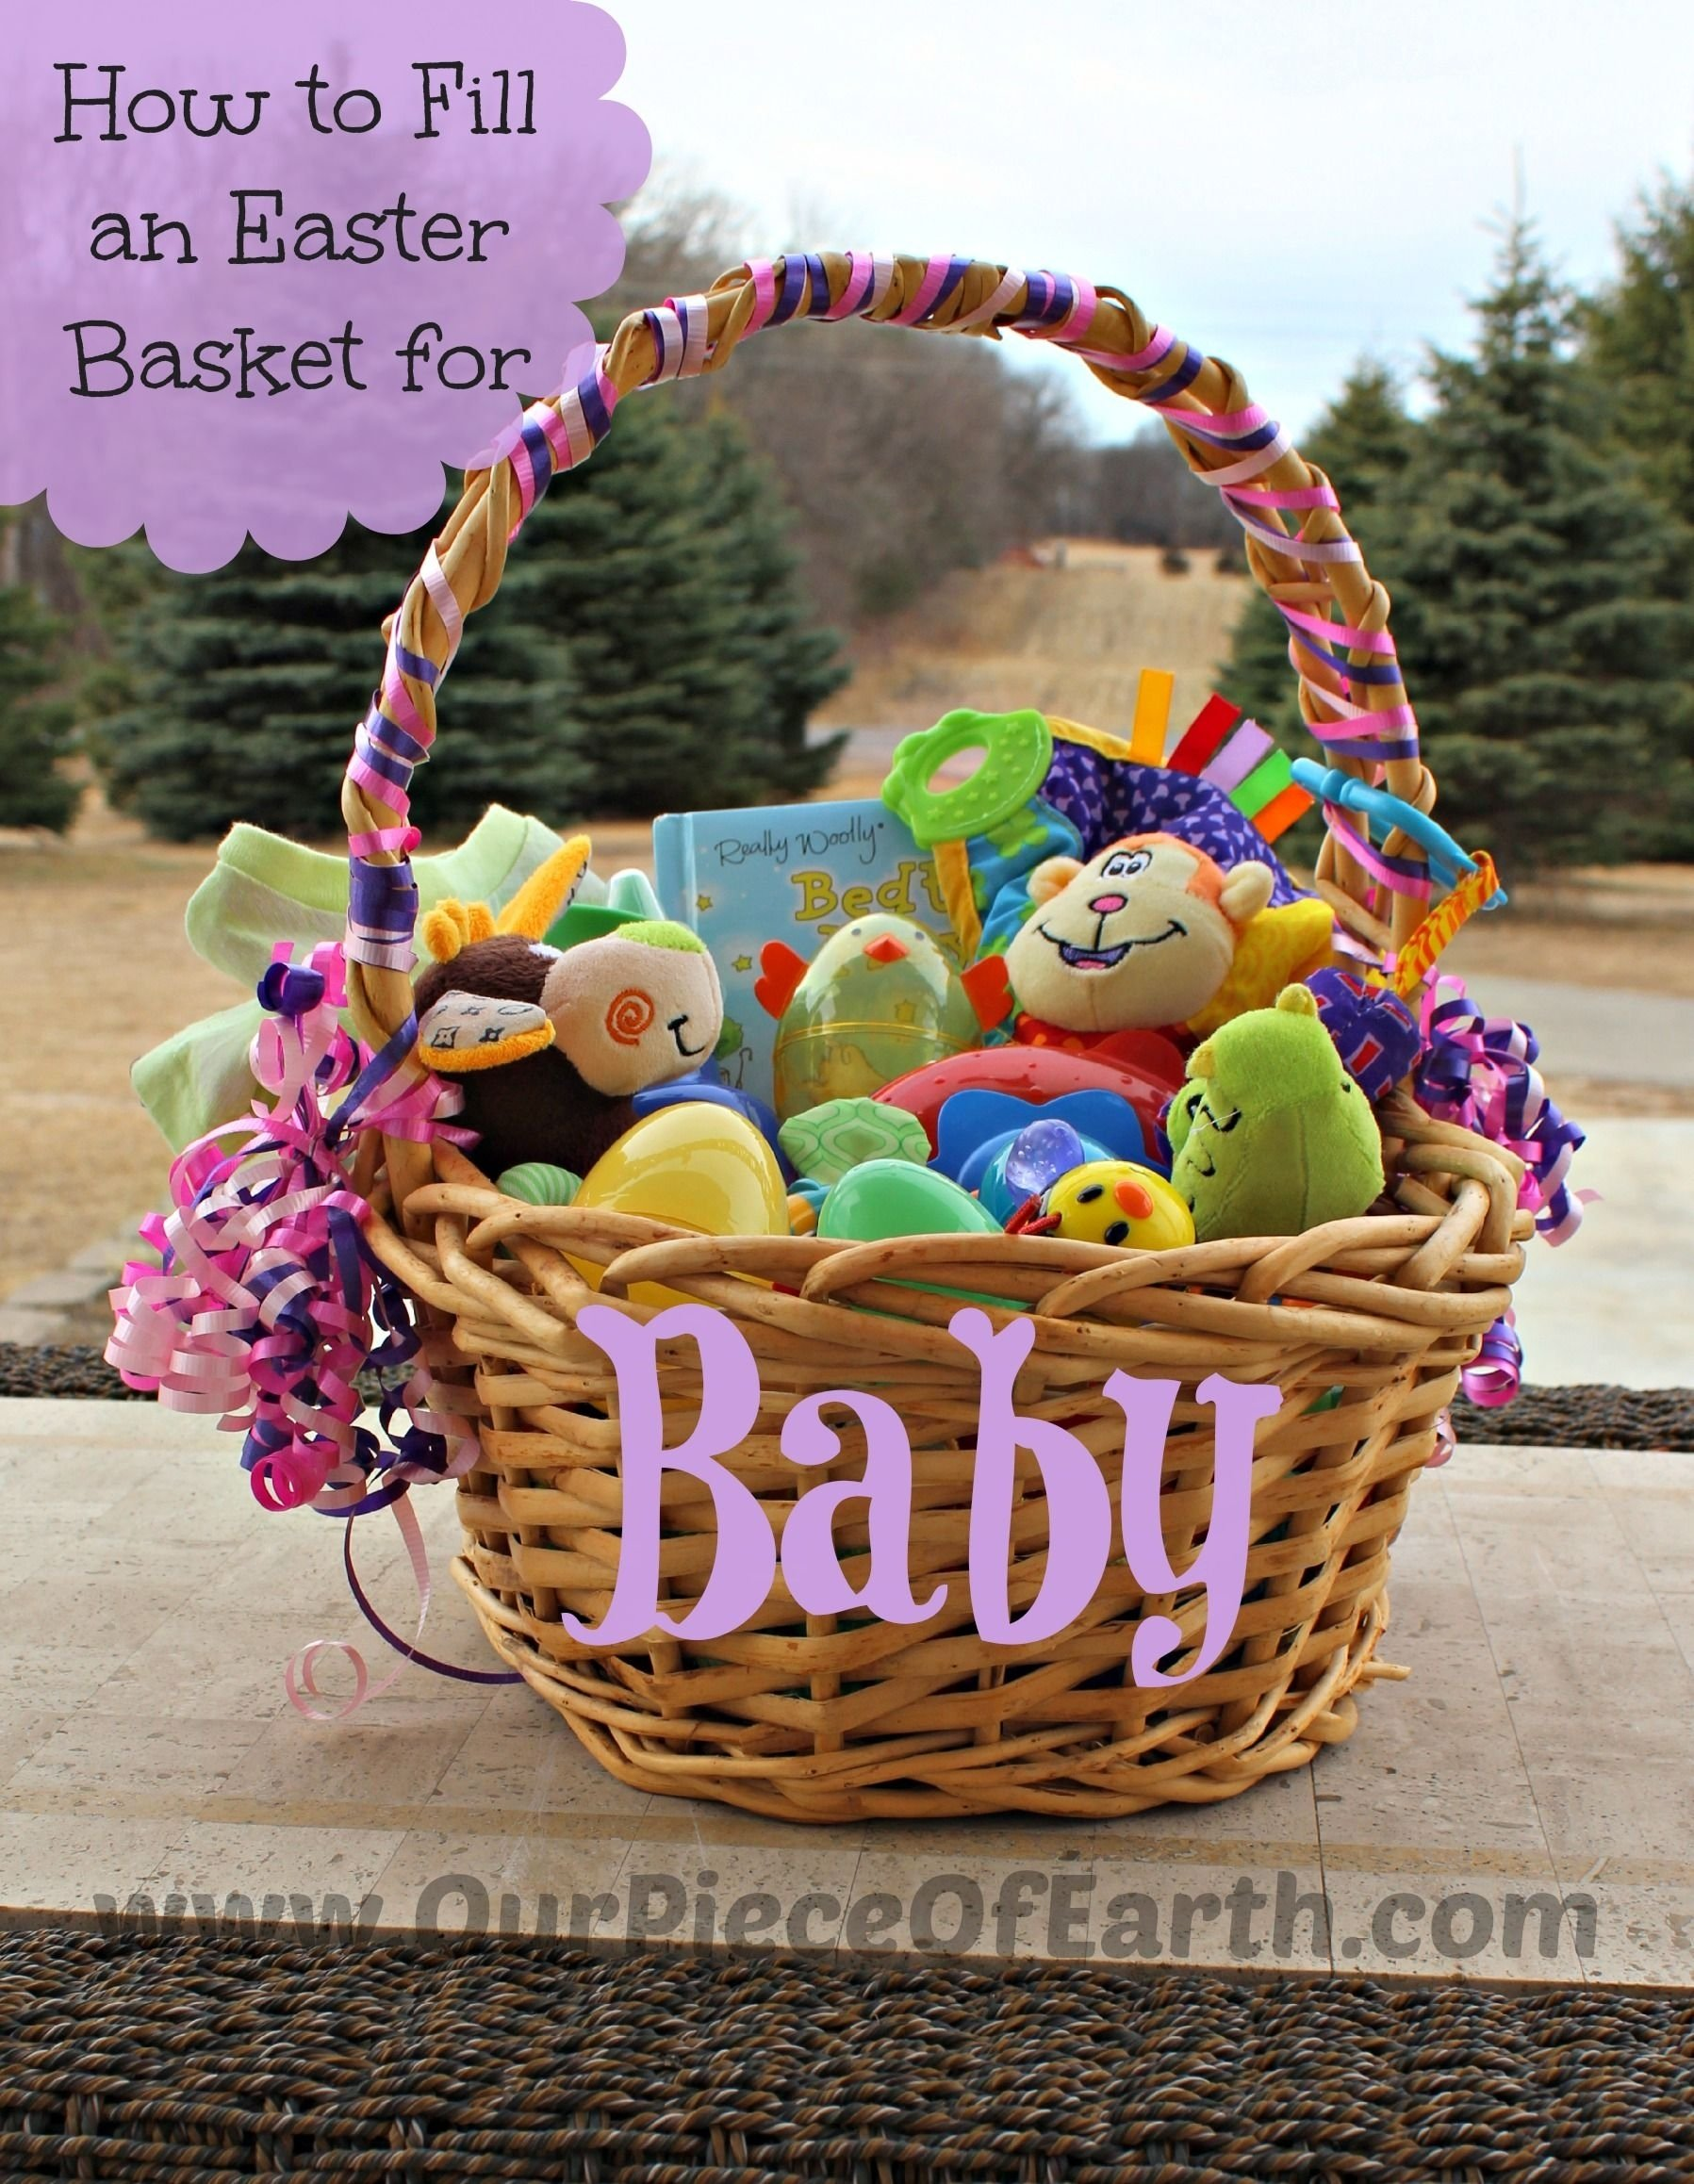 10 Cute Easter Basket Ideas For Infants what to put in babys easter basket our piece of earth blog posts 2021